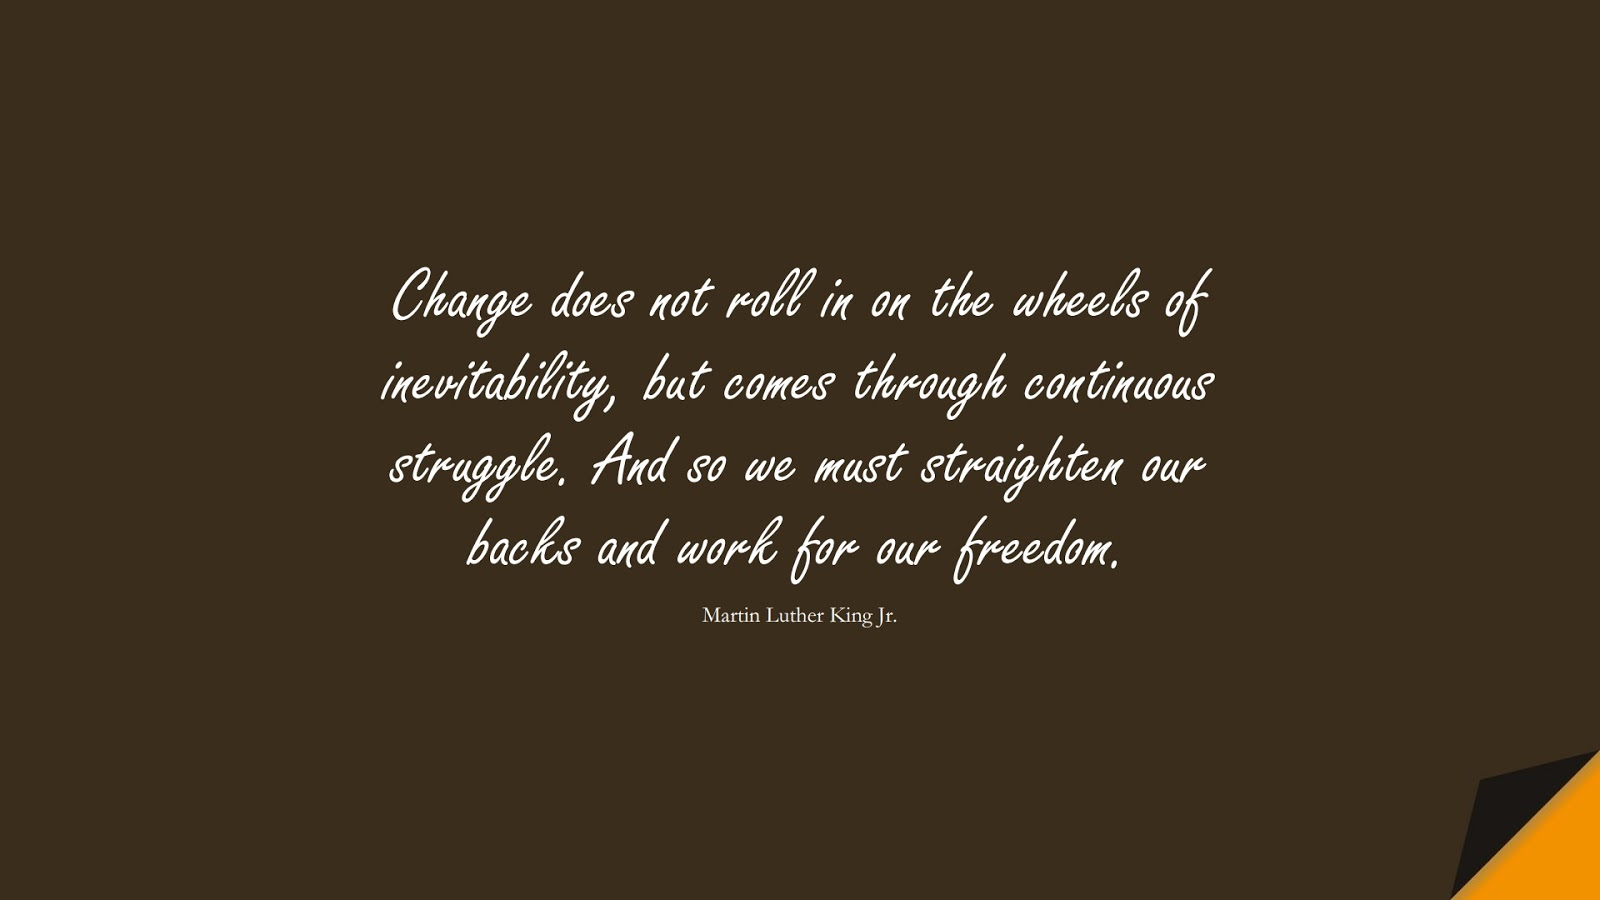 Change does not roll in on the wheels of inevitability, but comes through continuous struggle. And so we must straighten our backs and work for our freedom. (Martin Luther King Jr.);  #ChangeQuotes